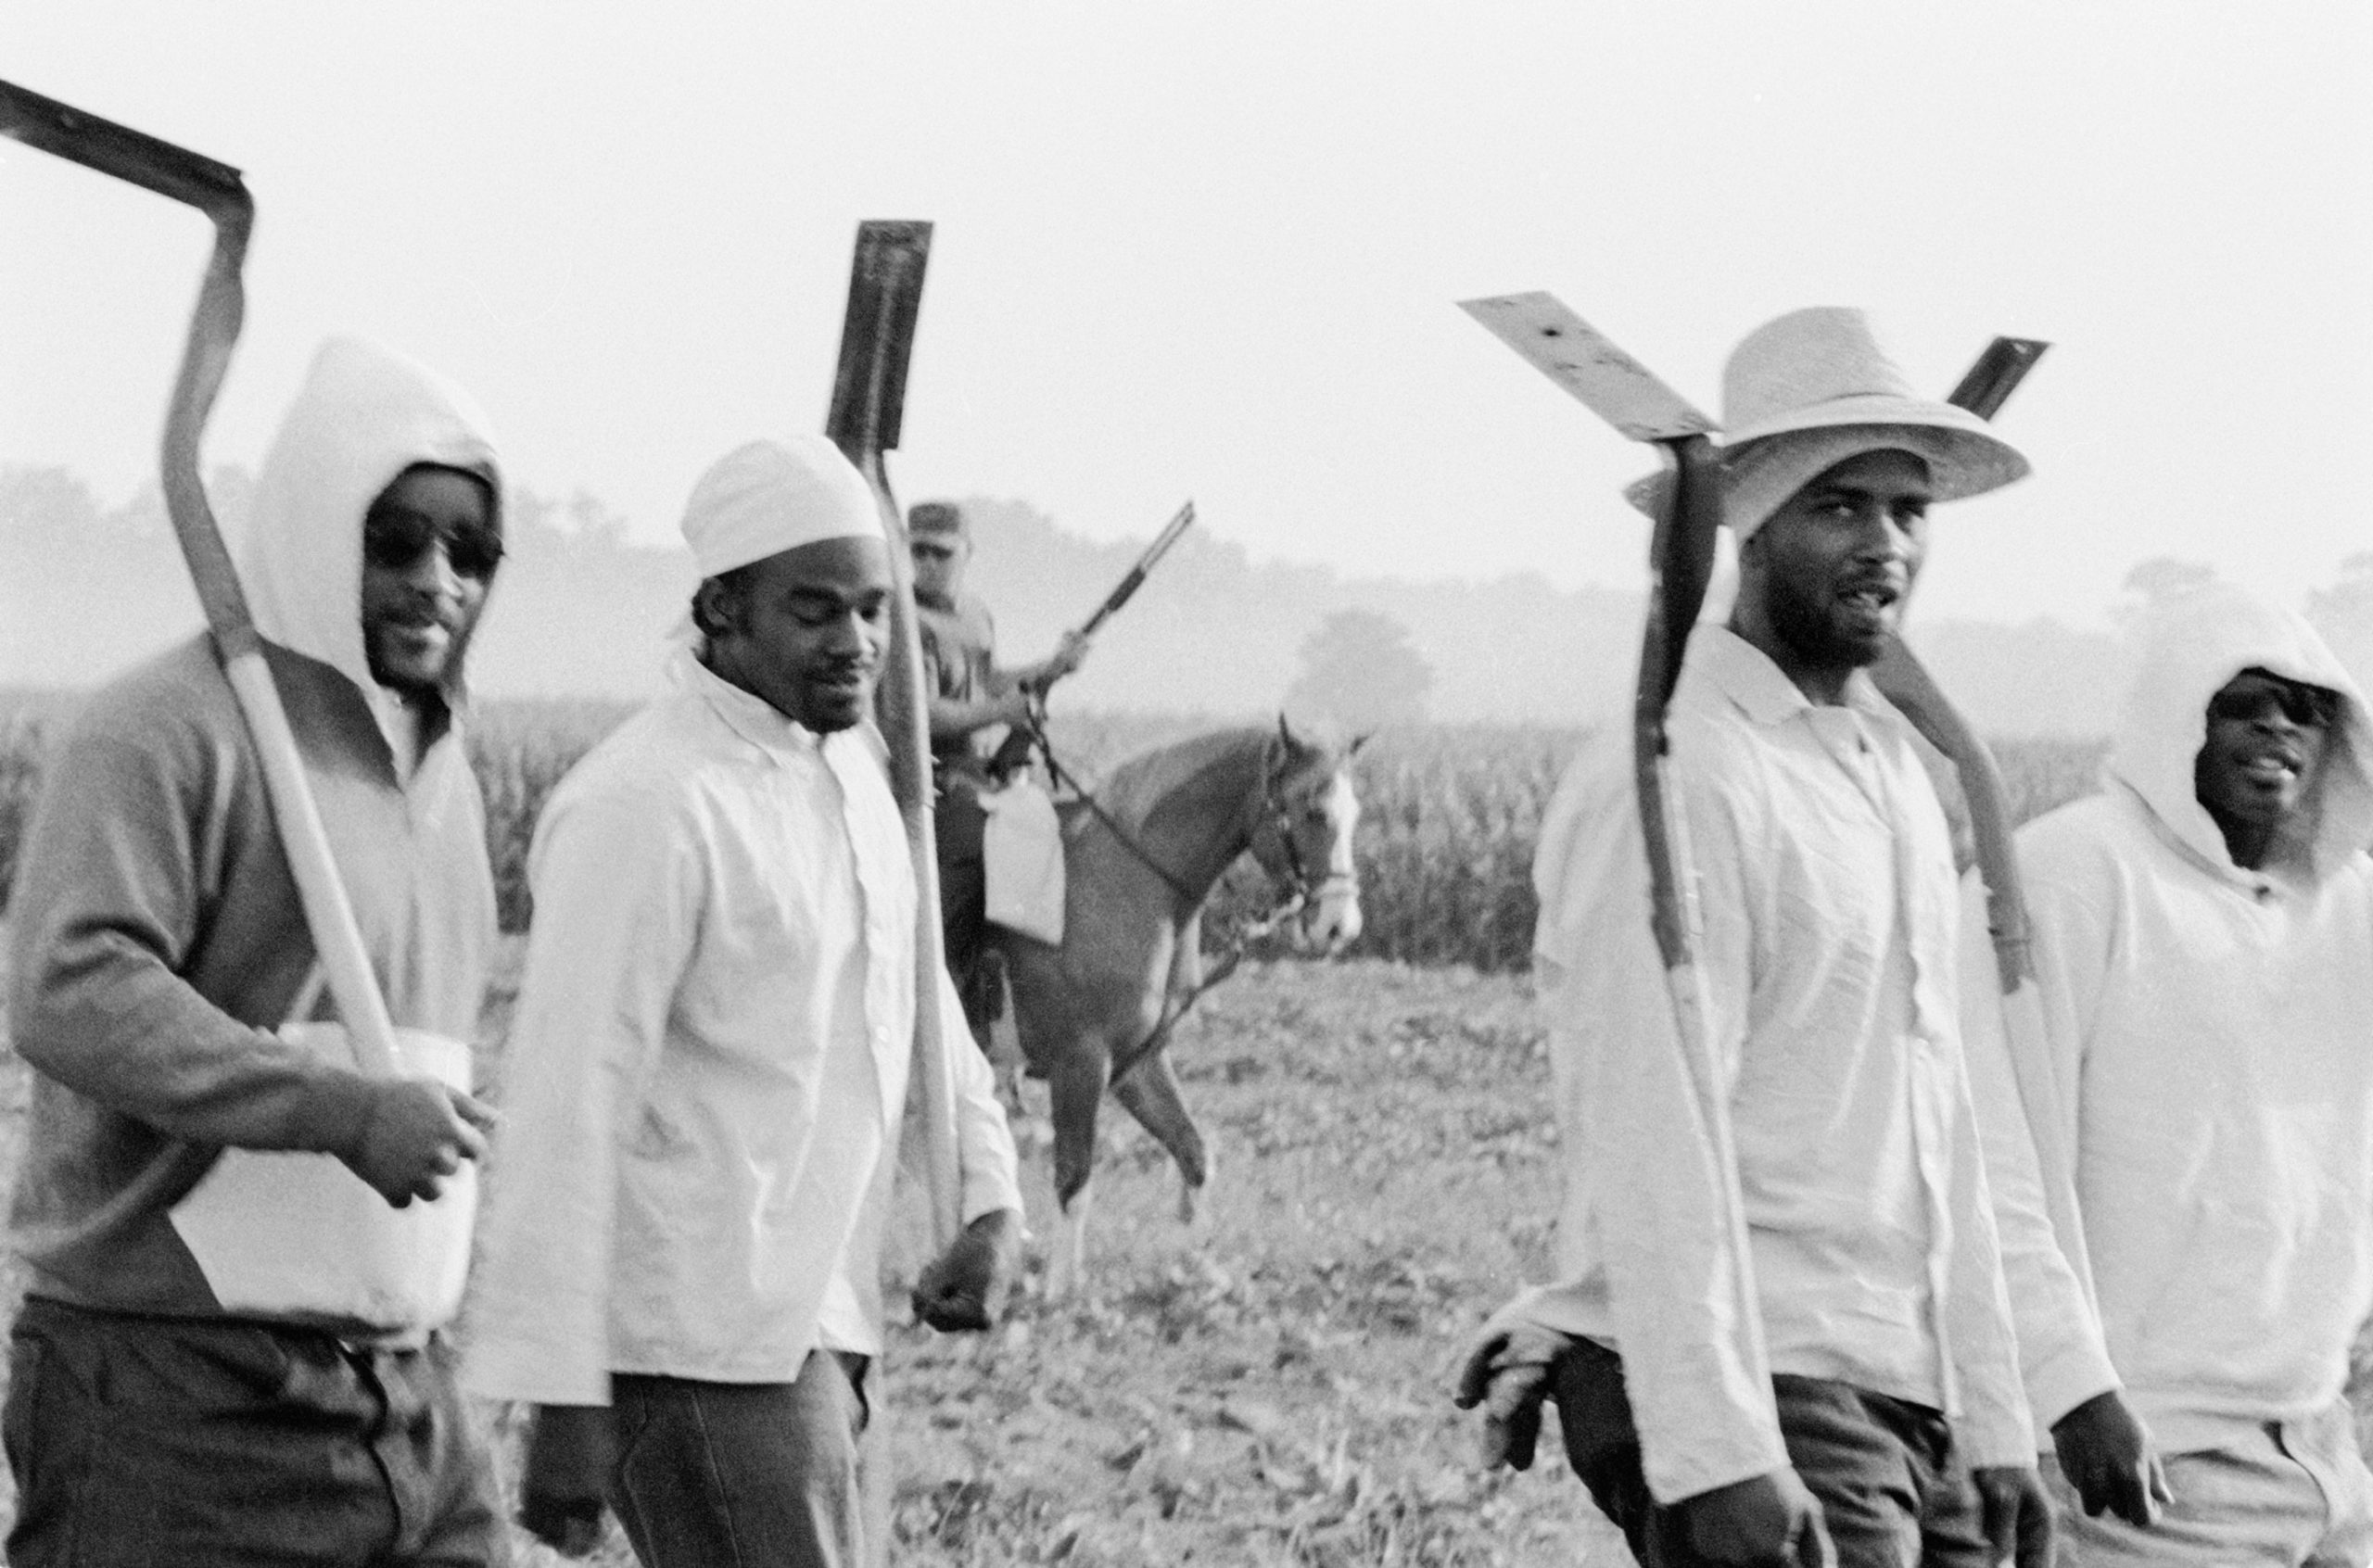 Chandra McCormick, Men Going to Work in the Fields of Angola, 2004. Archival pigment print. Courtesy of the artist.